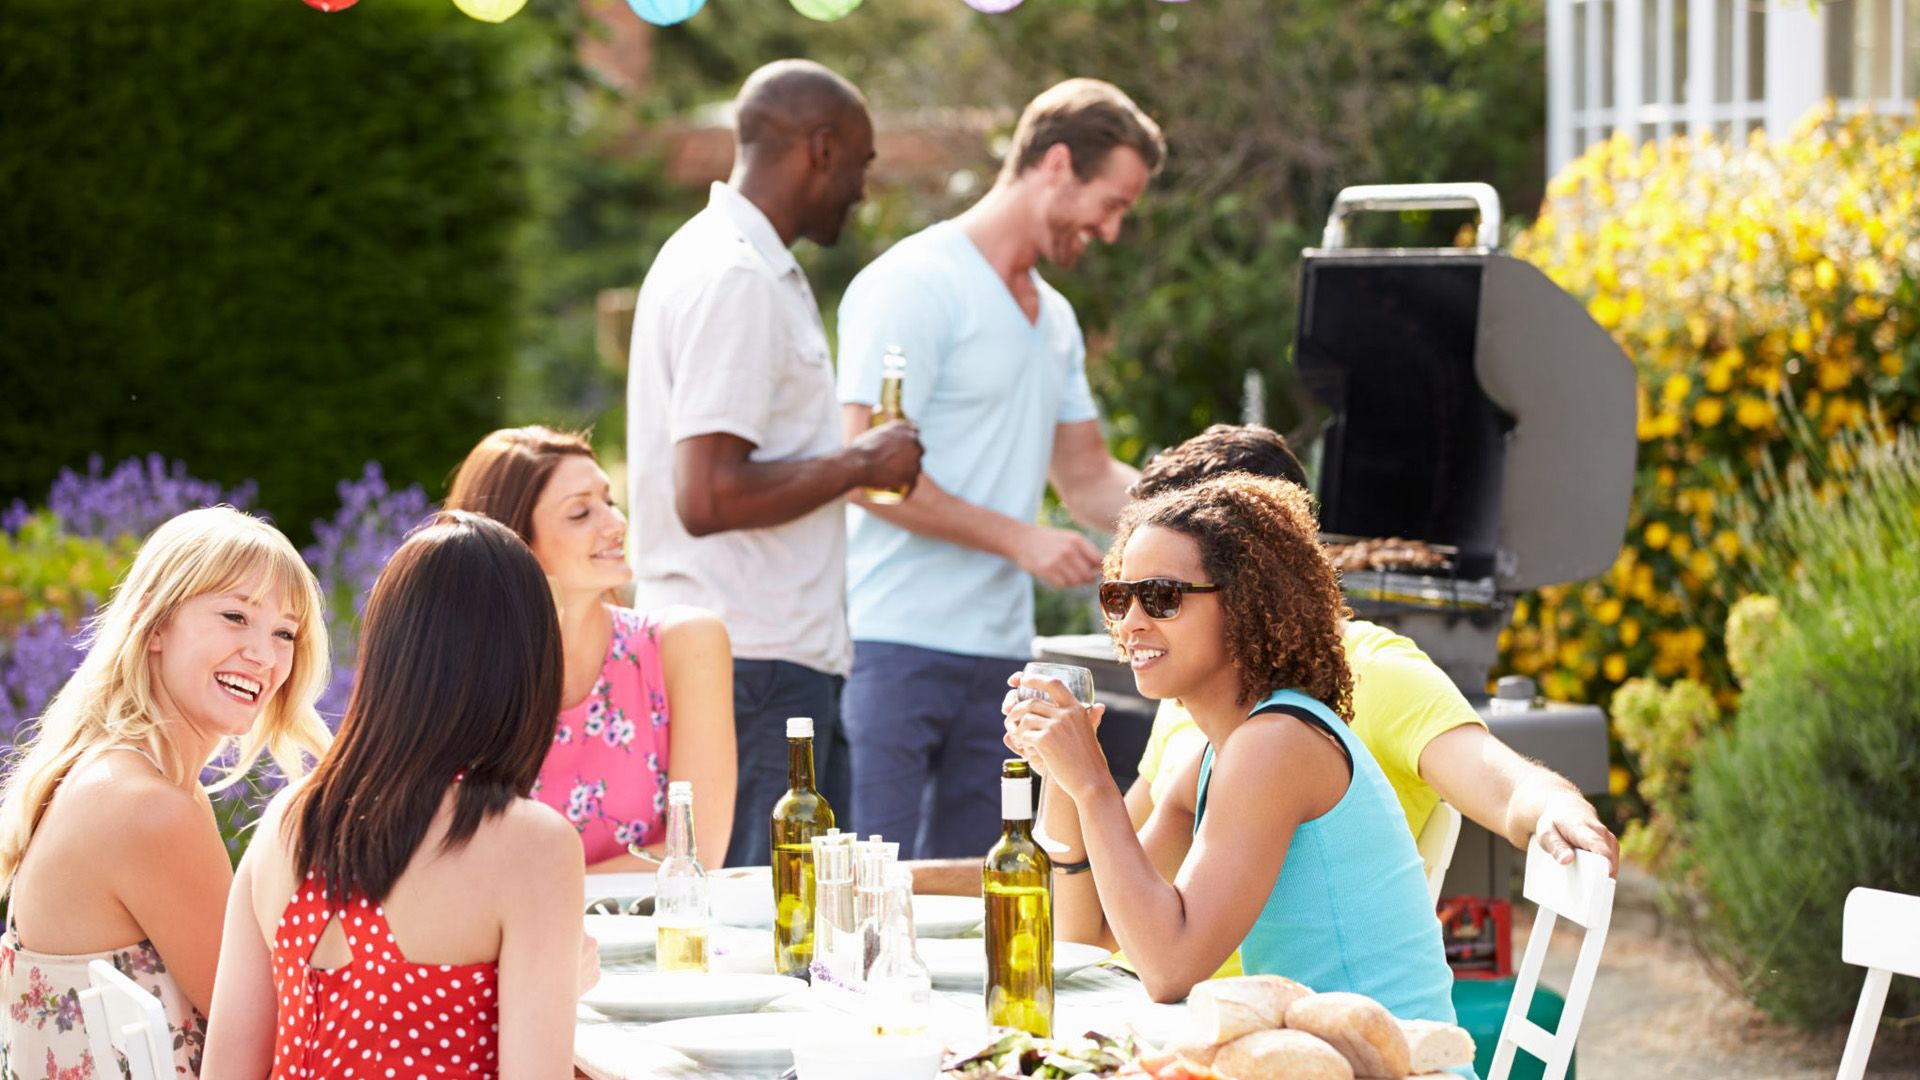 Always try to find your social role in any situation, for example, take care of the grill at a barbeque party.